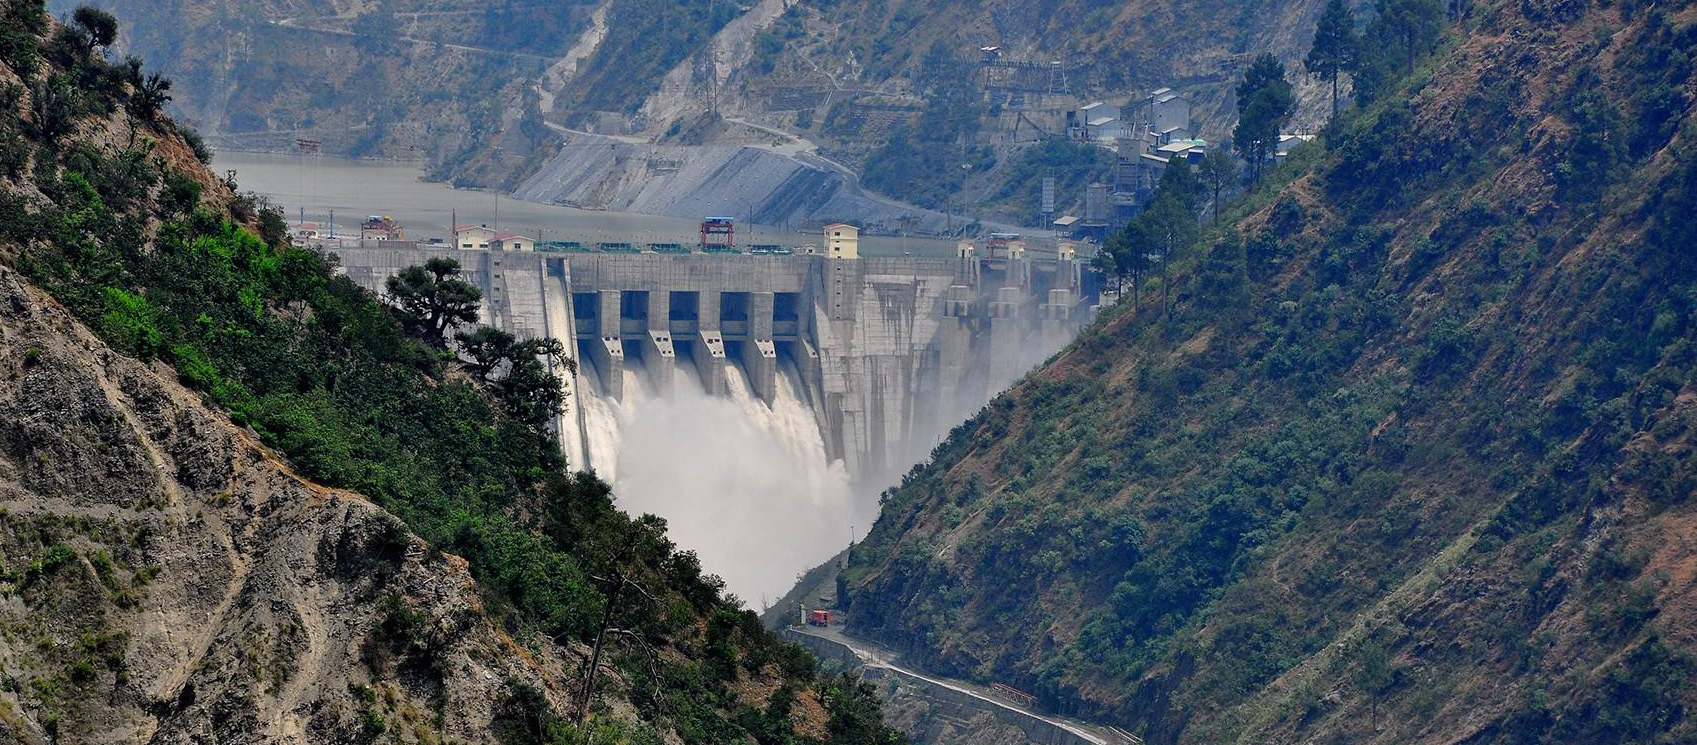 Dams in India